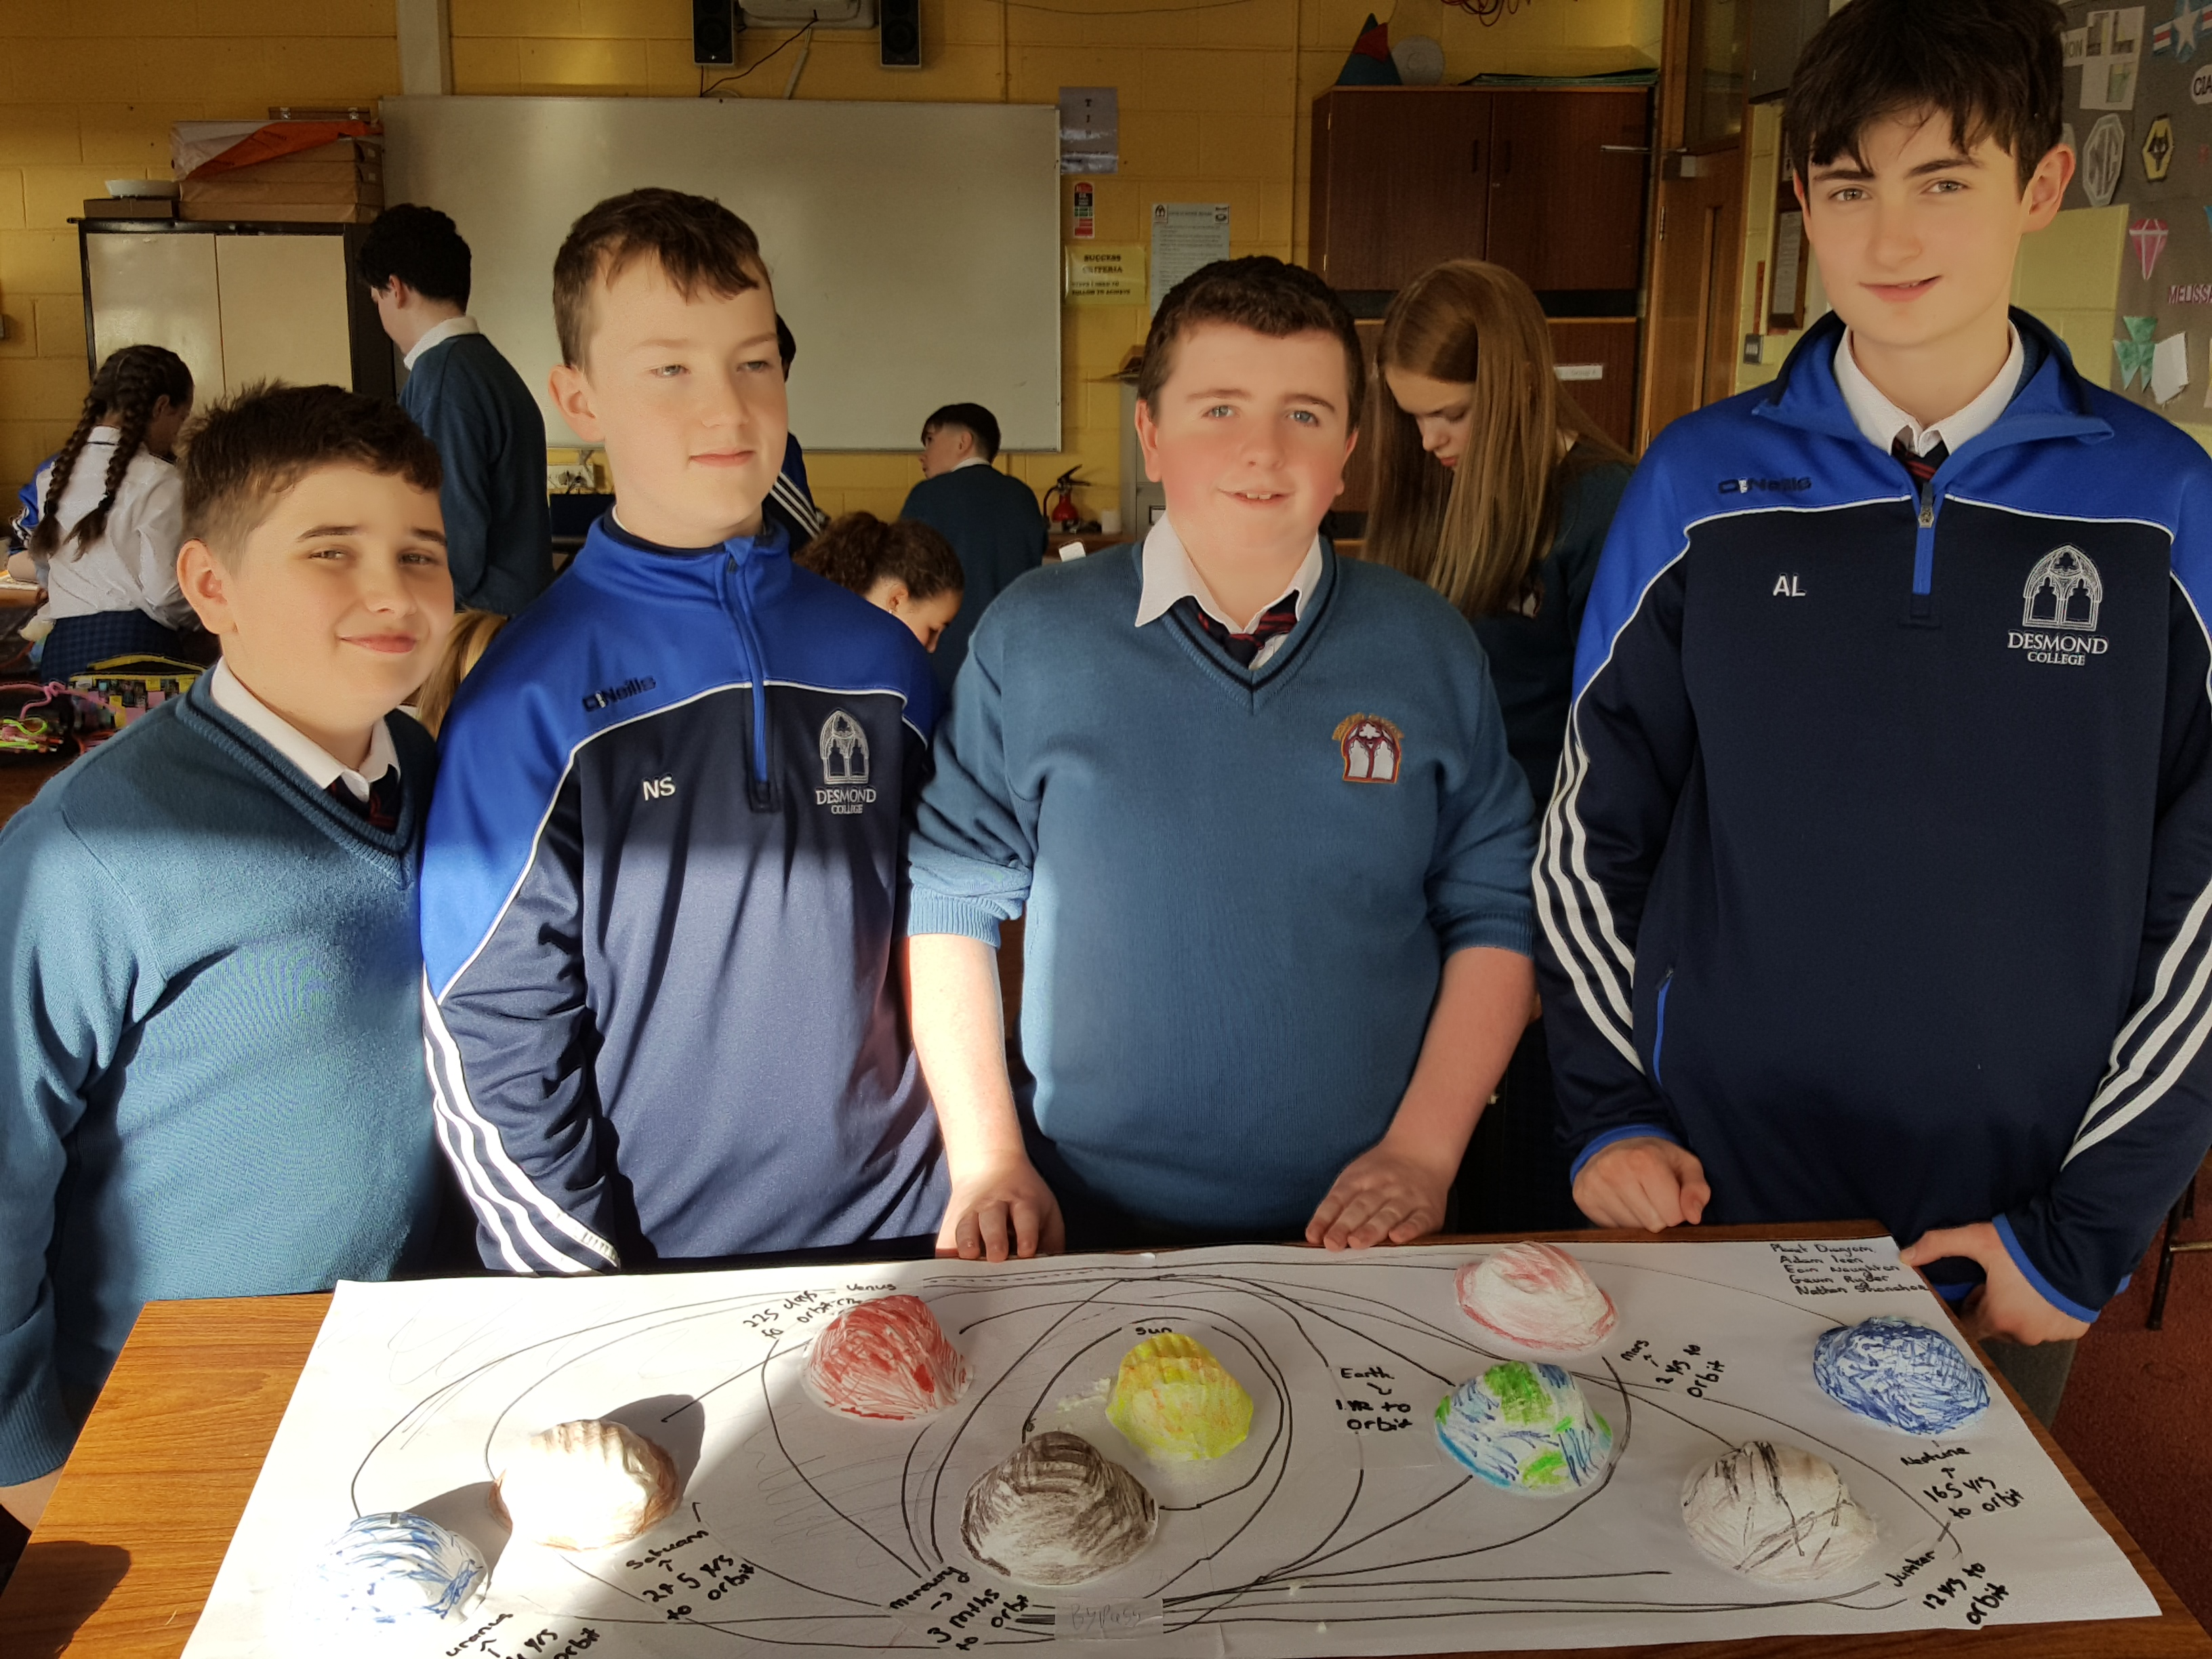 Eoin Naughton-Powell, Nathan Shanahan, Gavin Ryder and Adam Leen with their model of the Milky Way.